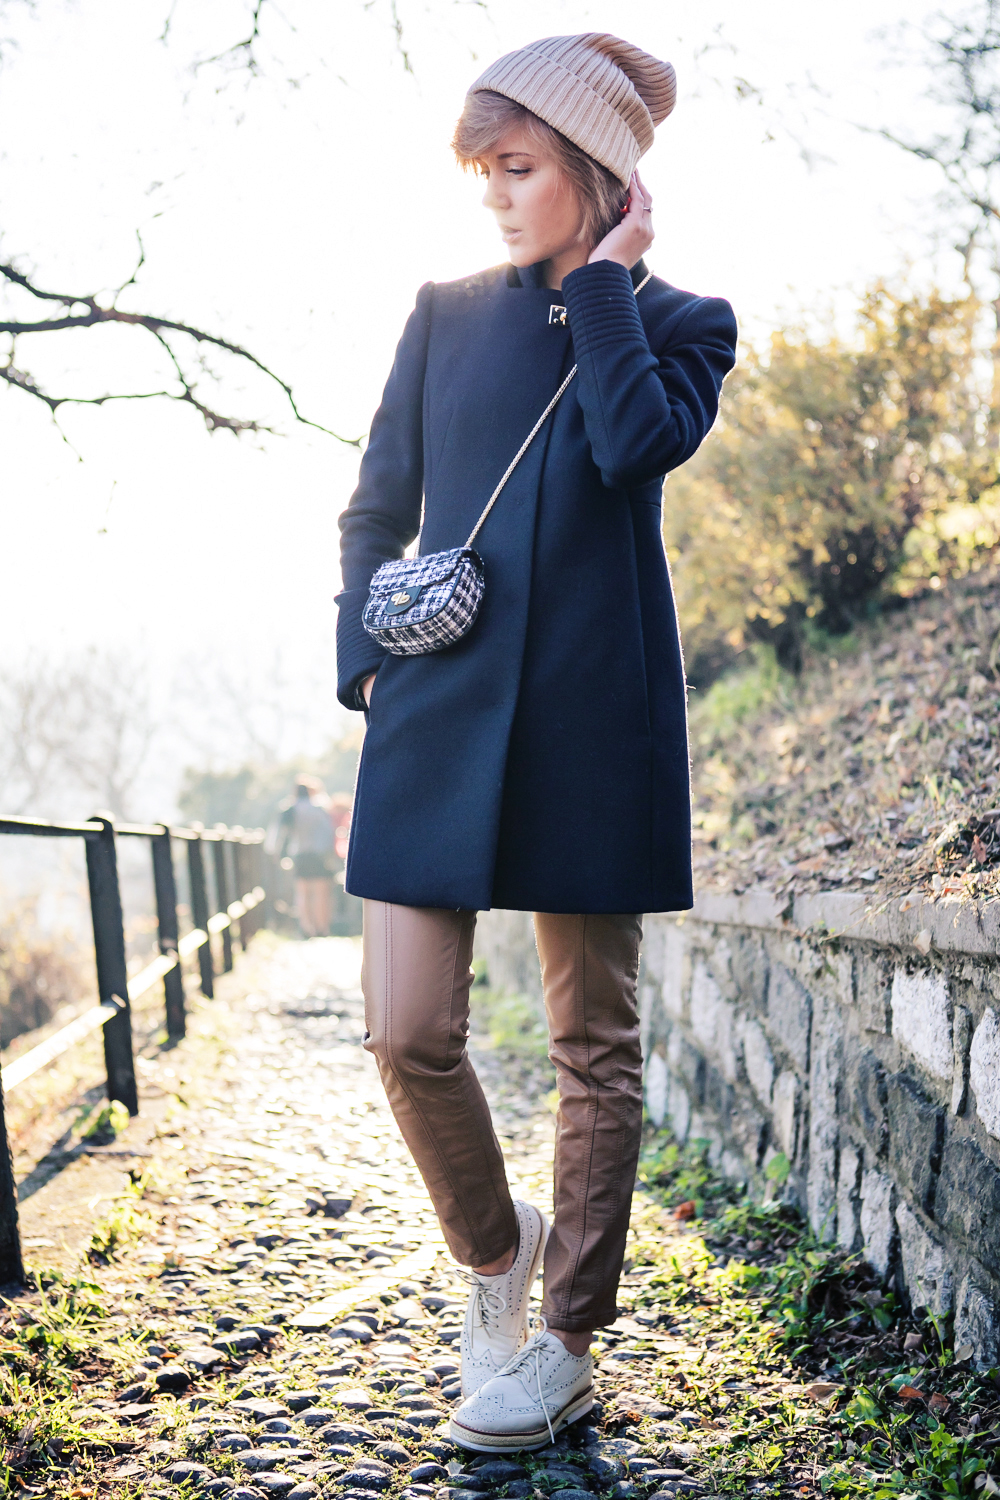 darya kamalova thecablook fashion blog russian blogger italy moda street style pixie short hair fashion blogger fay classiccoat tartan shirt brown leather pants pollini shoes infinity ring boyfriend beanie pinko bag brescia castello-7 copy